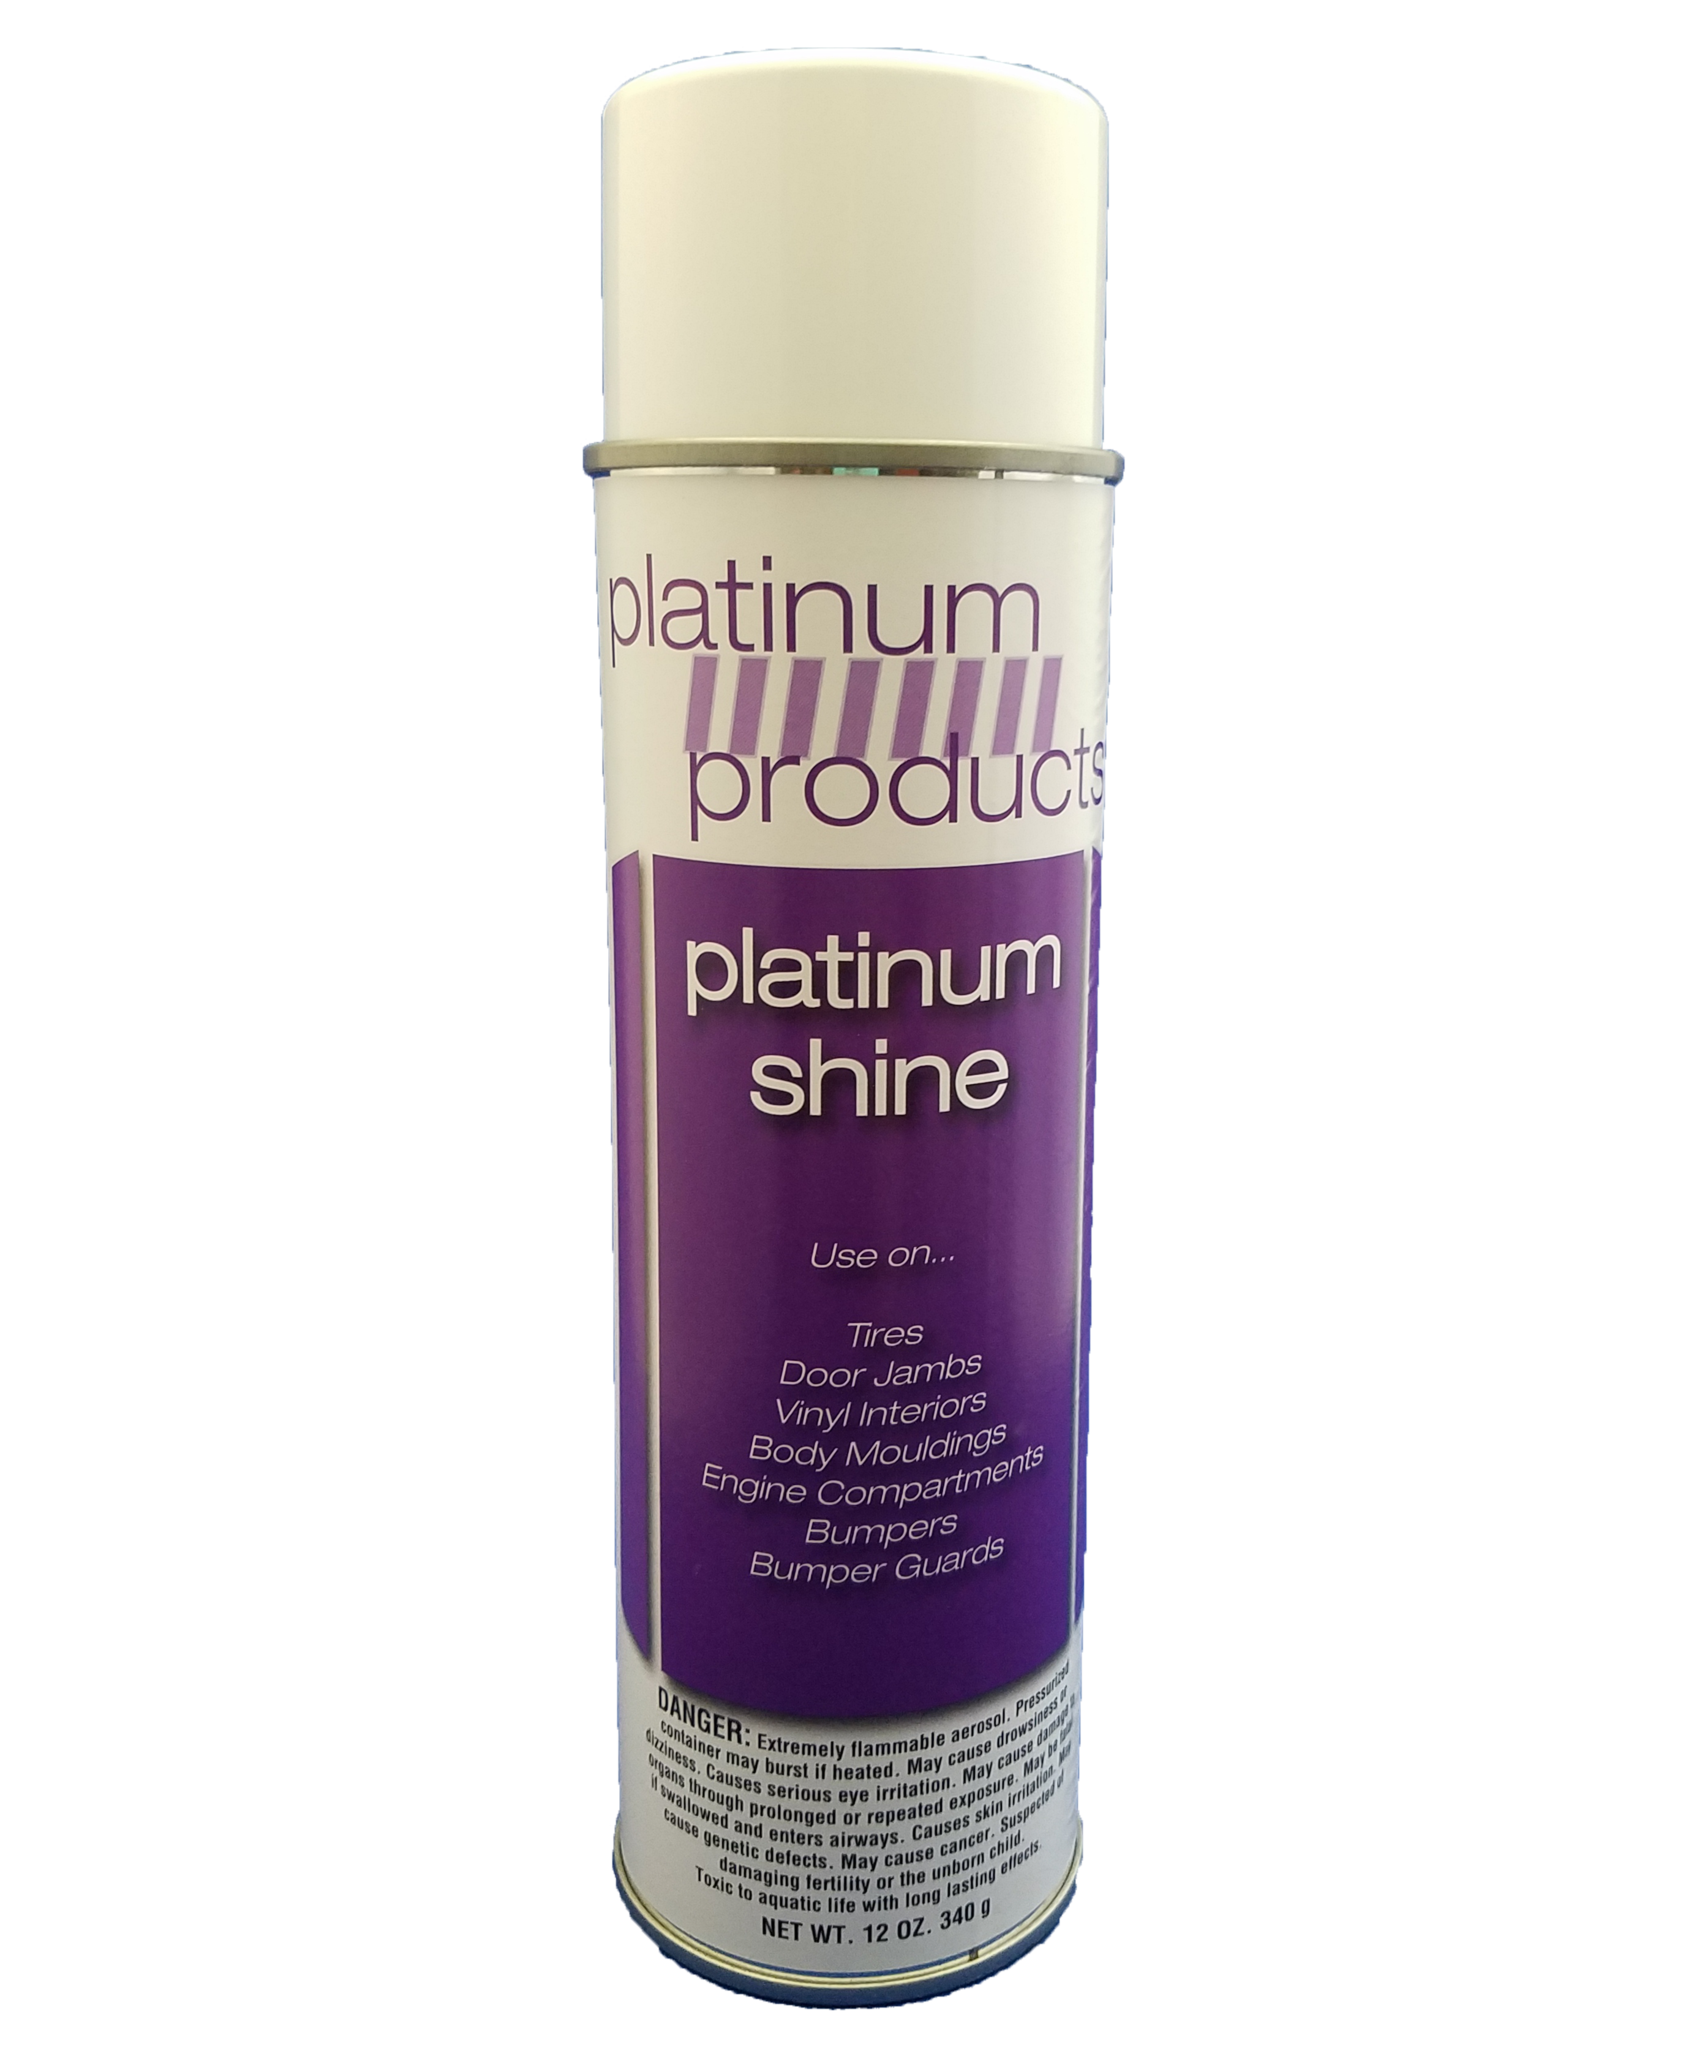 Platinum Products: Platinum Shine final detailer. Aerosol 12oz. detail spray.